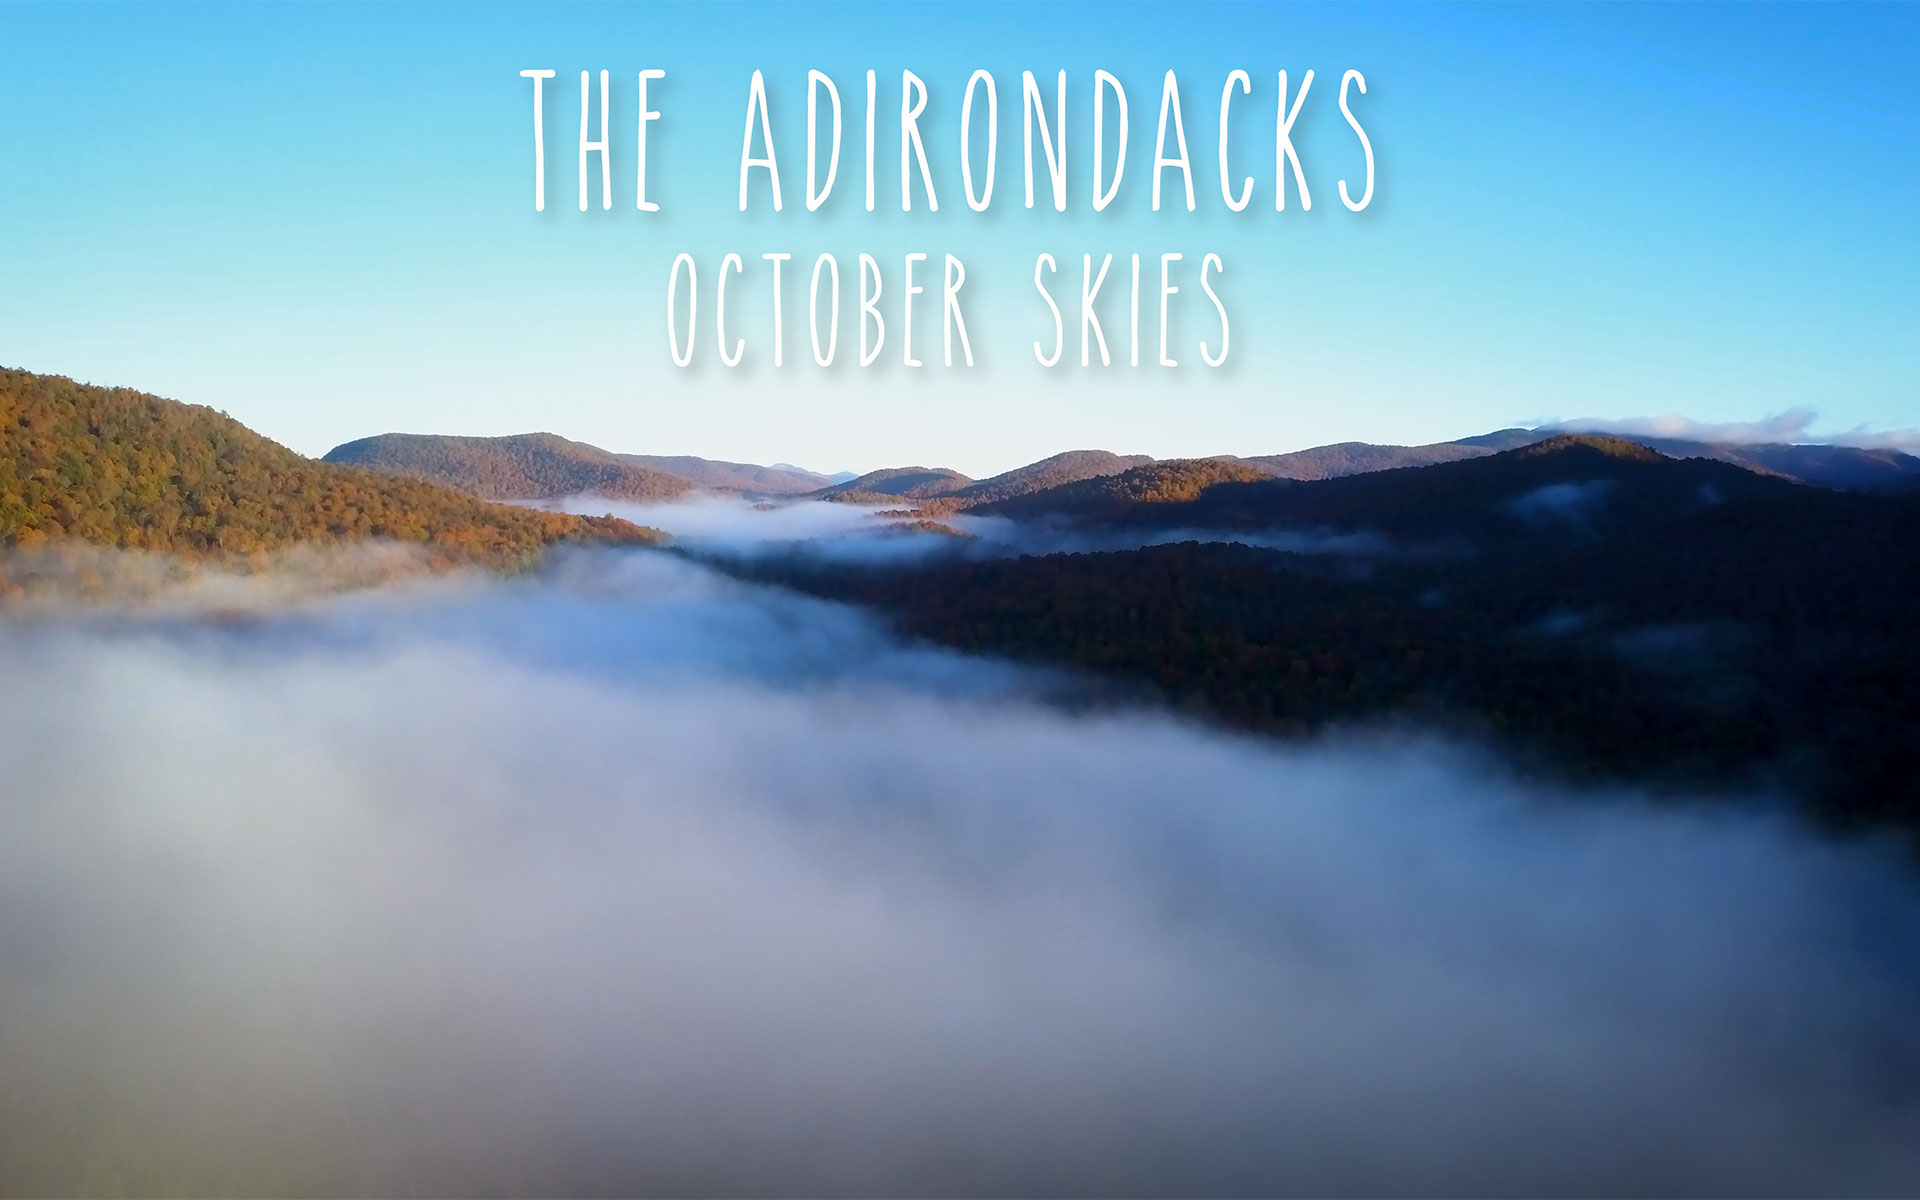 ADK October Skies